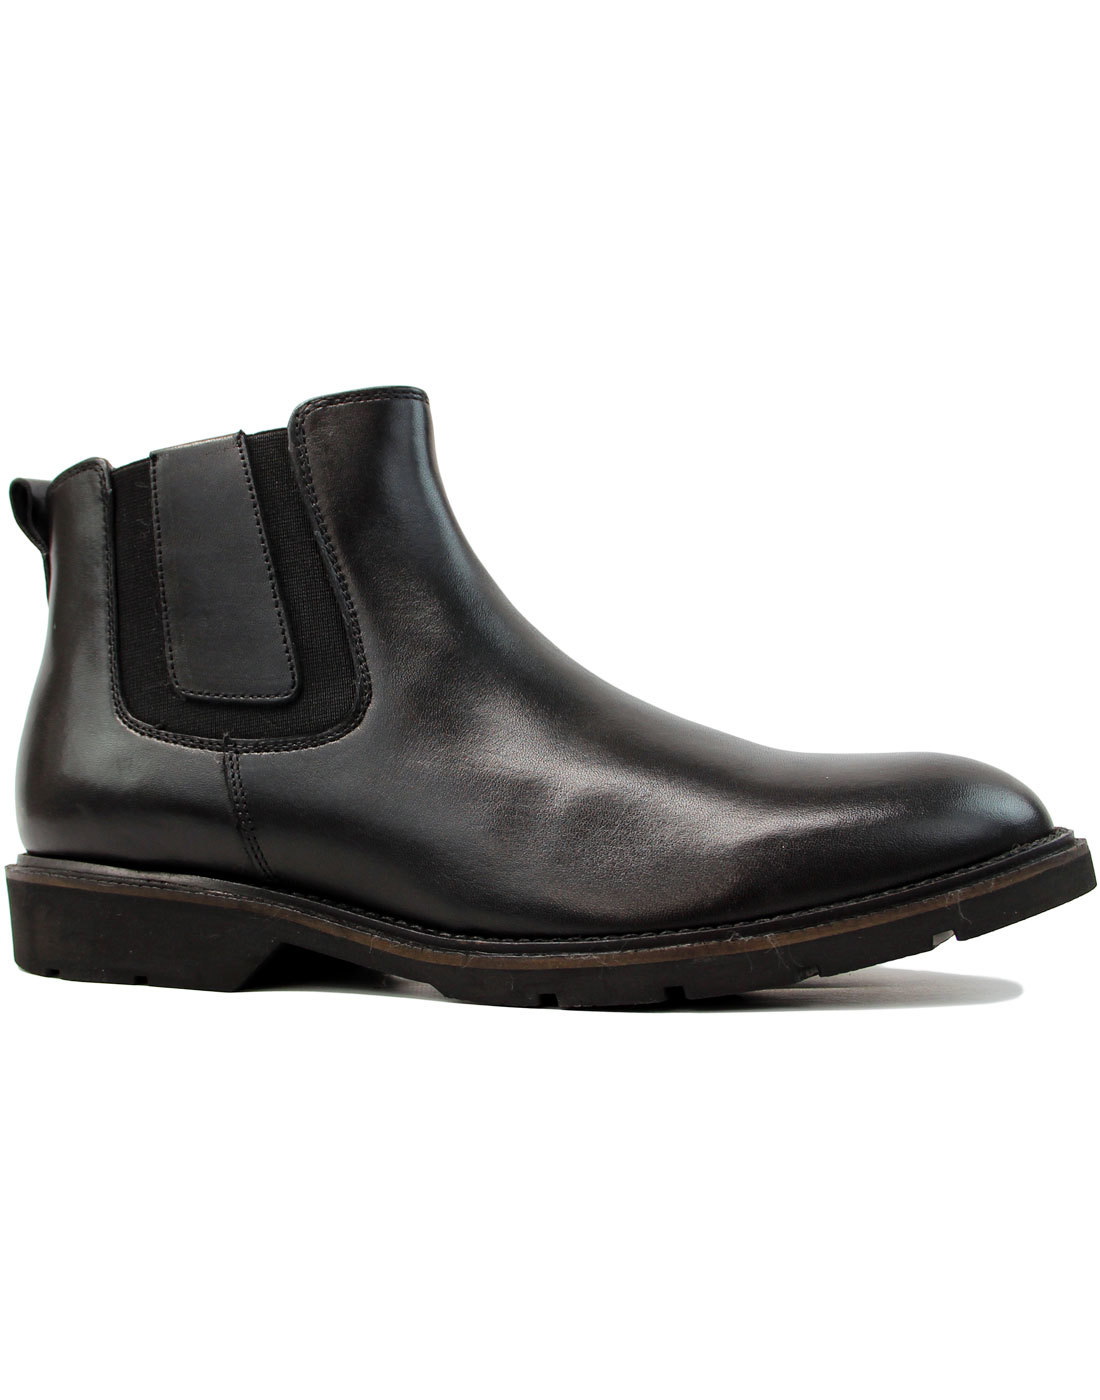 Rider Retro Mod Smooth Leather Chelsea Boots BLACK